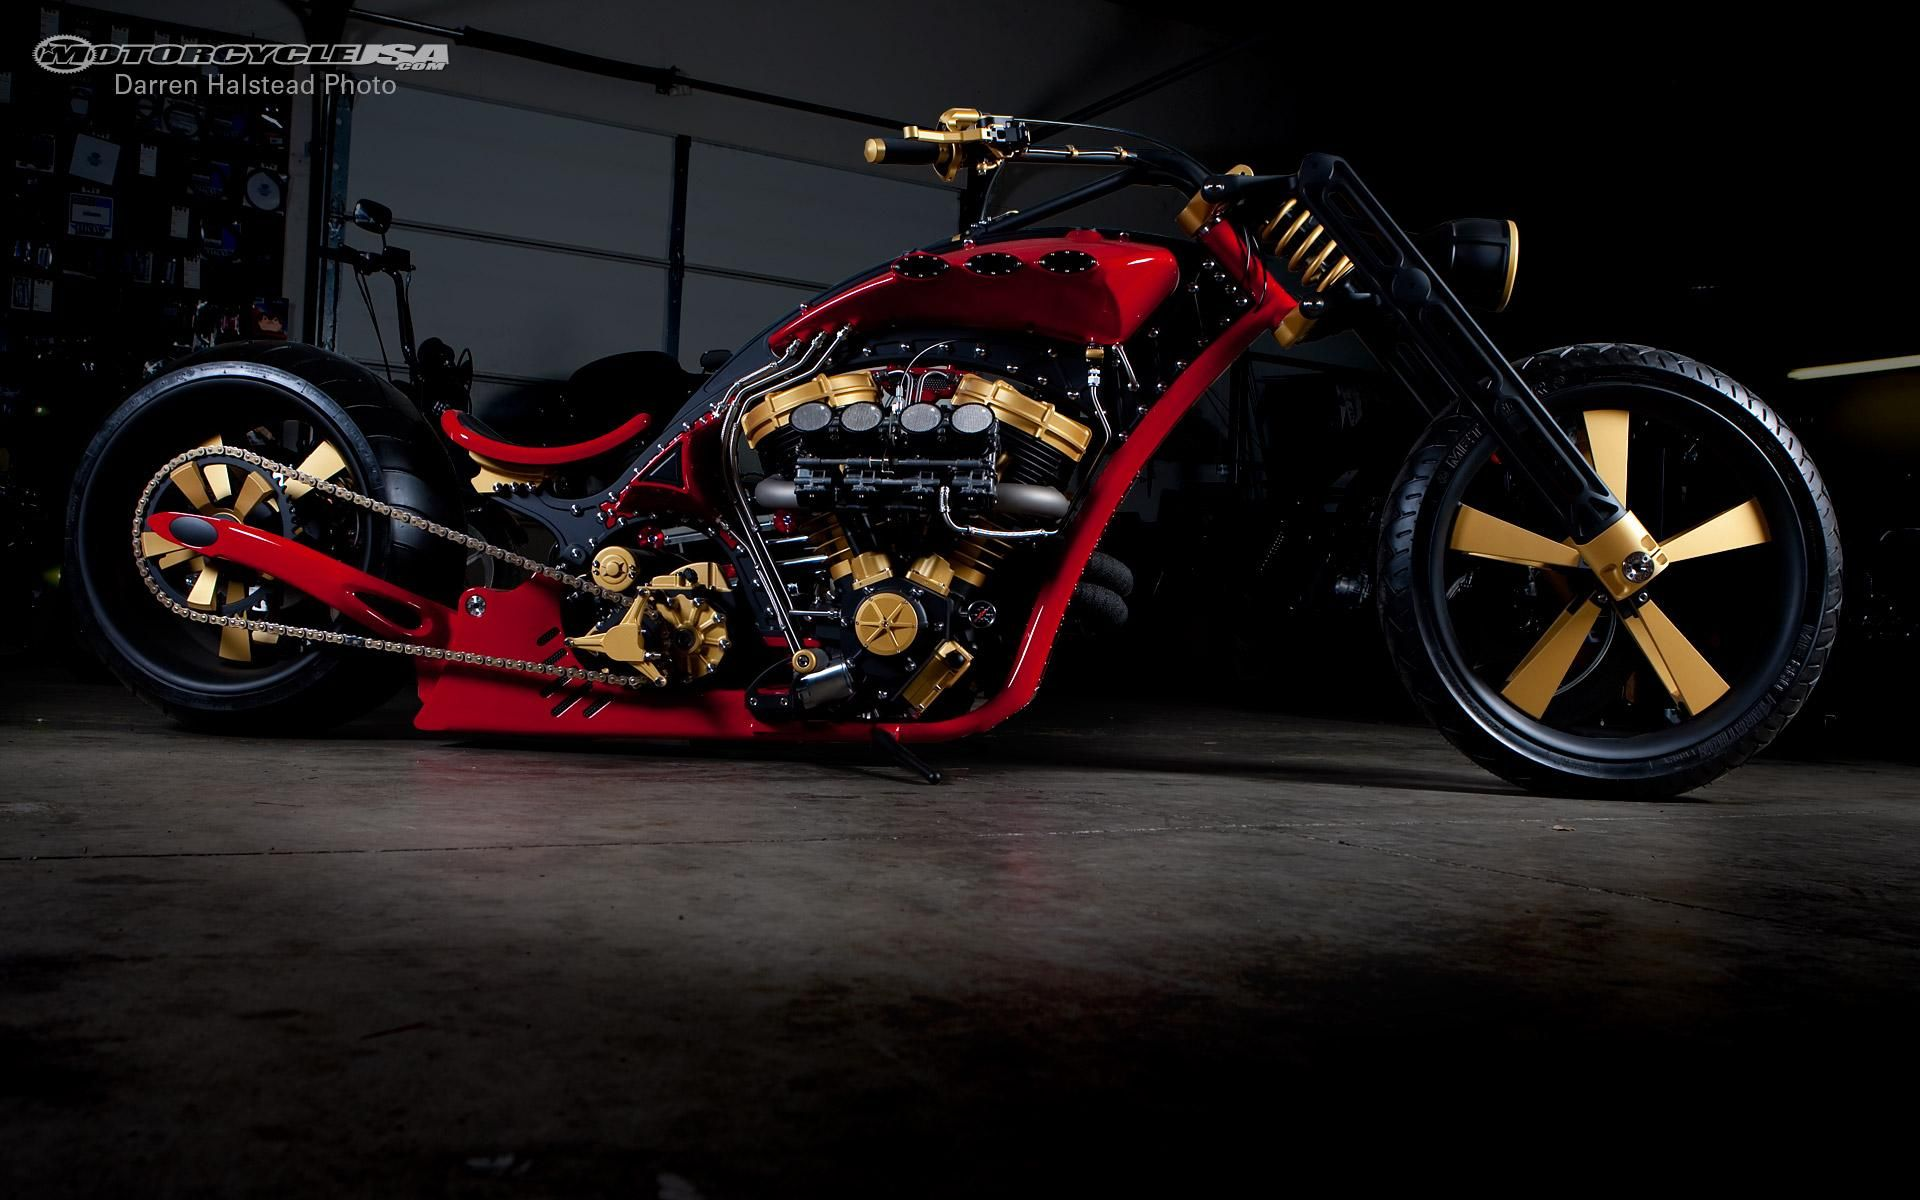 Custom Motorcycle Wallpaper Harley Davidson Bike Chopper